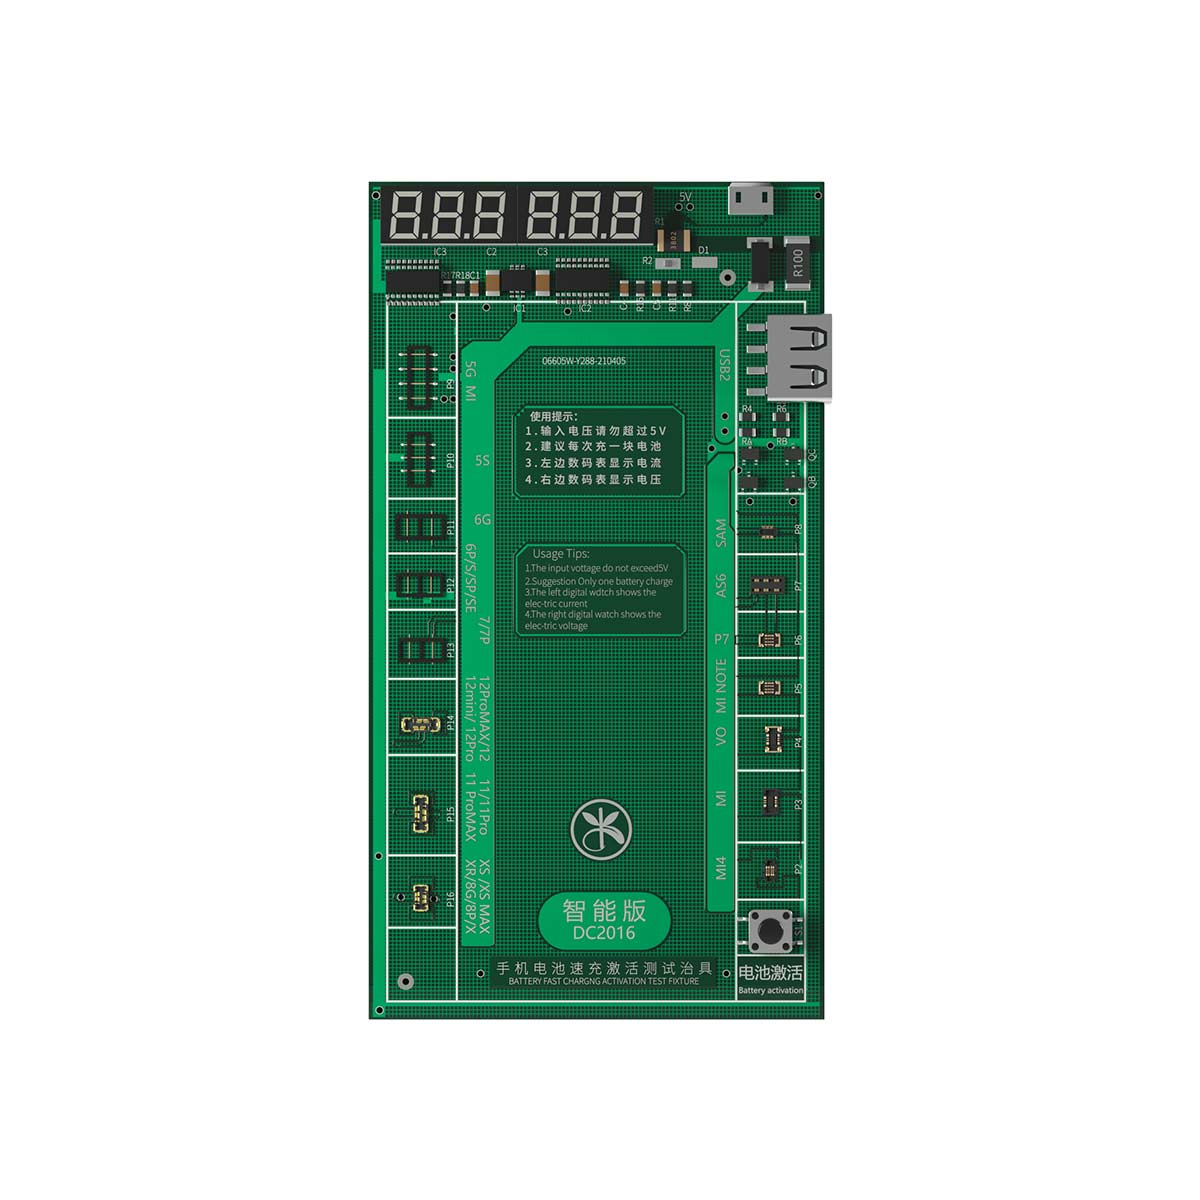 MiJing DC2016 Battery Activation Board For iPhone 5G-12 Pro Max